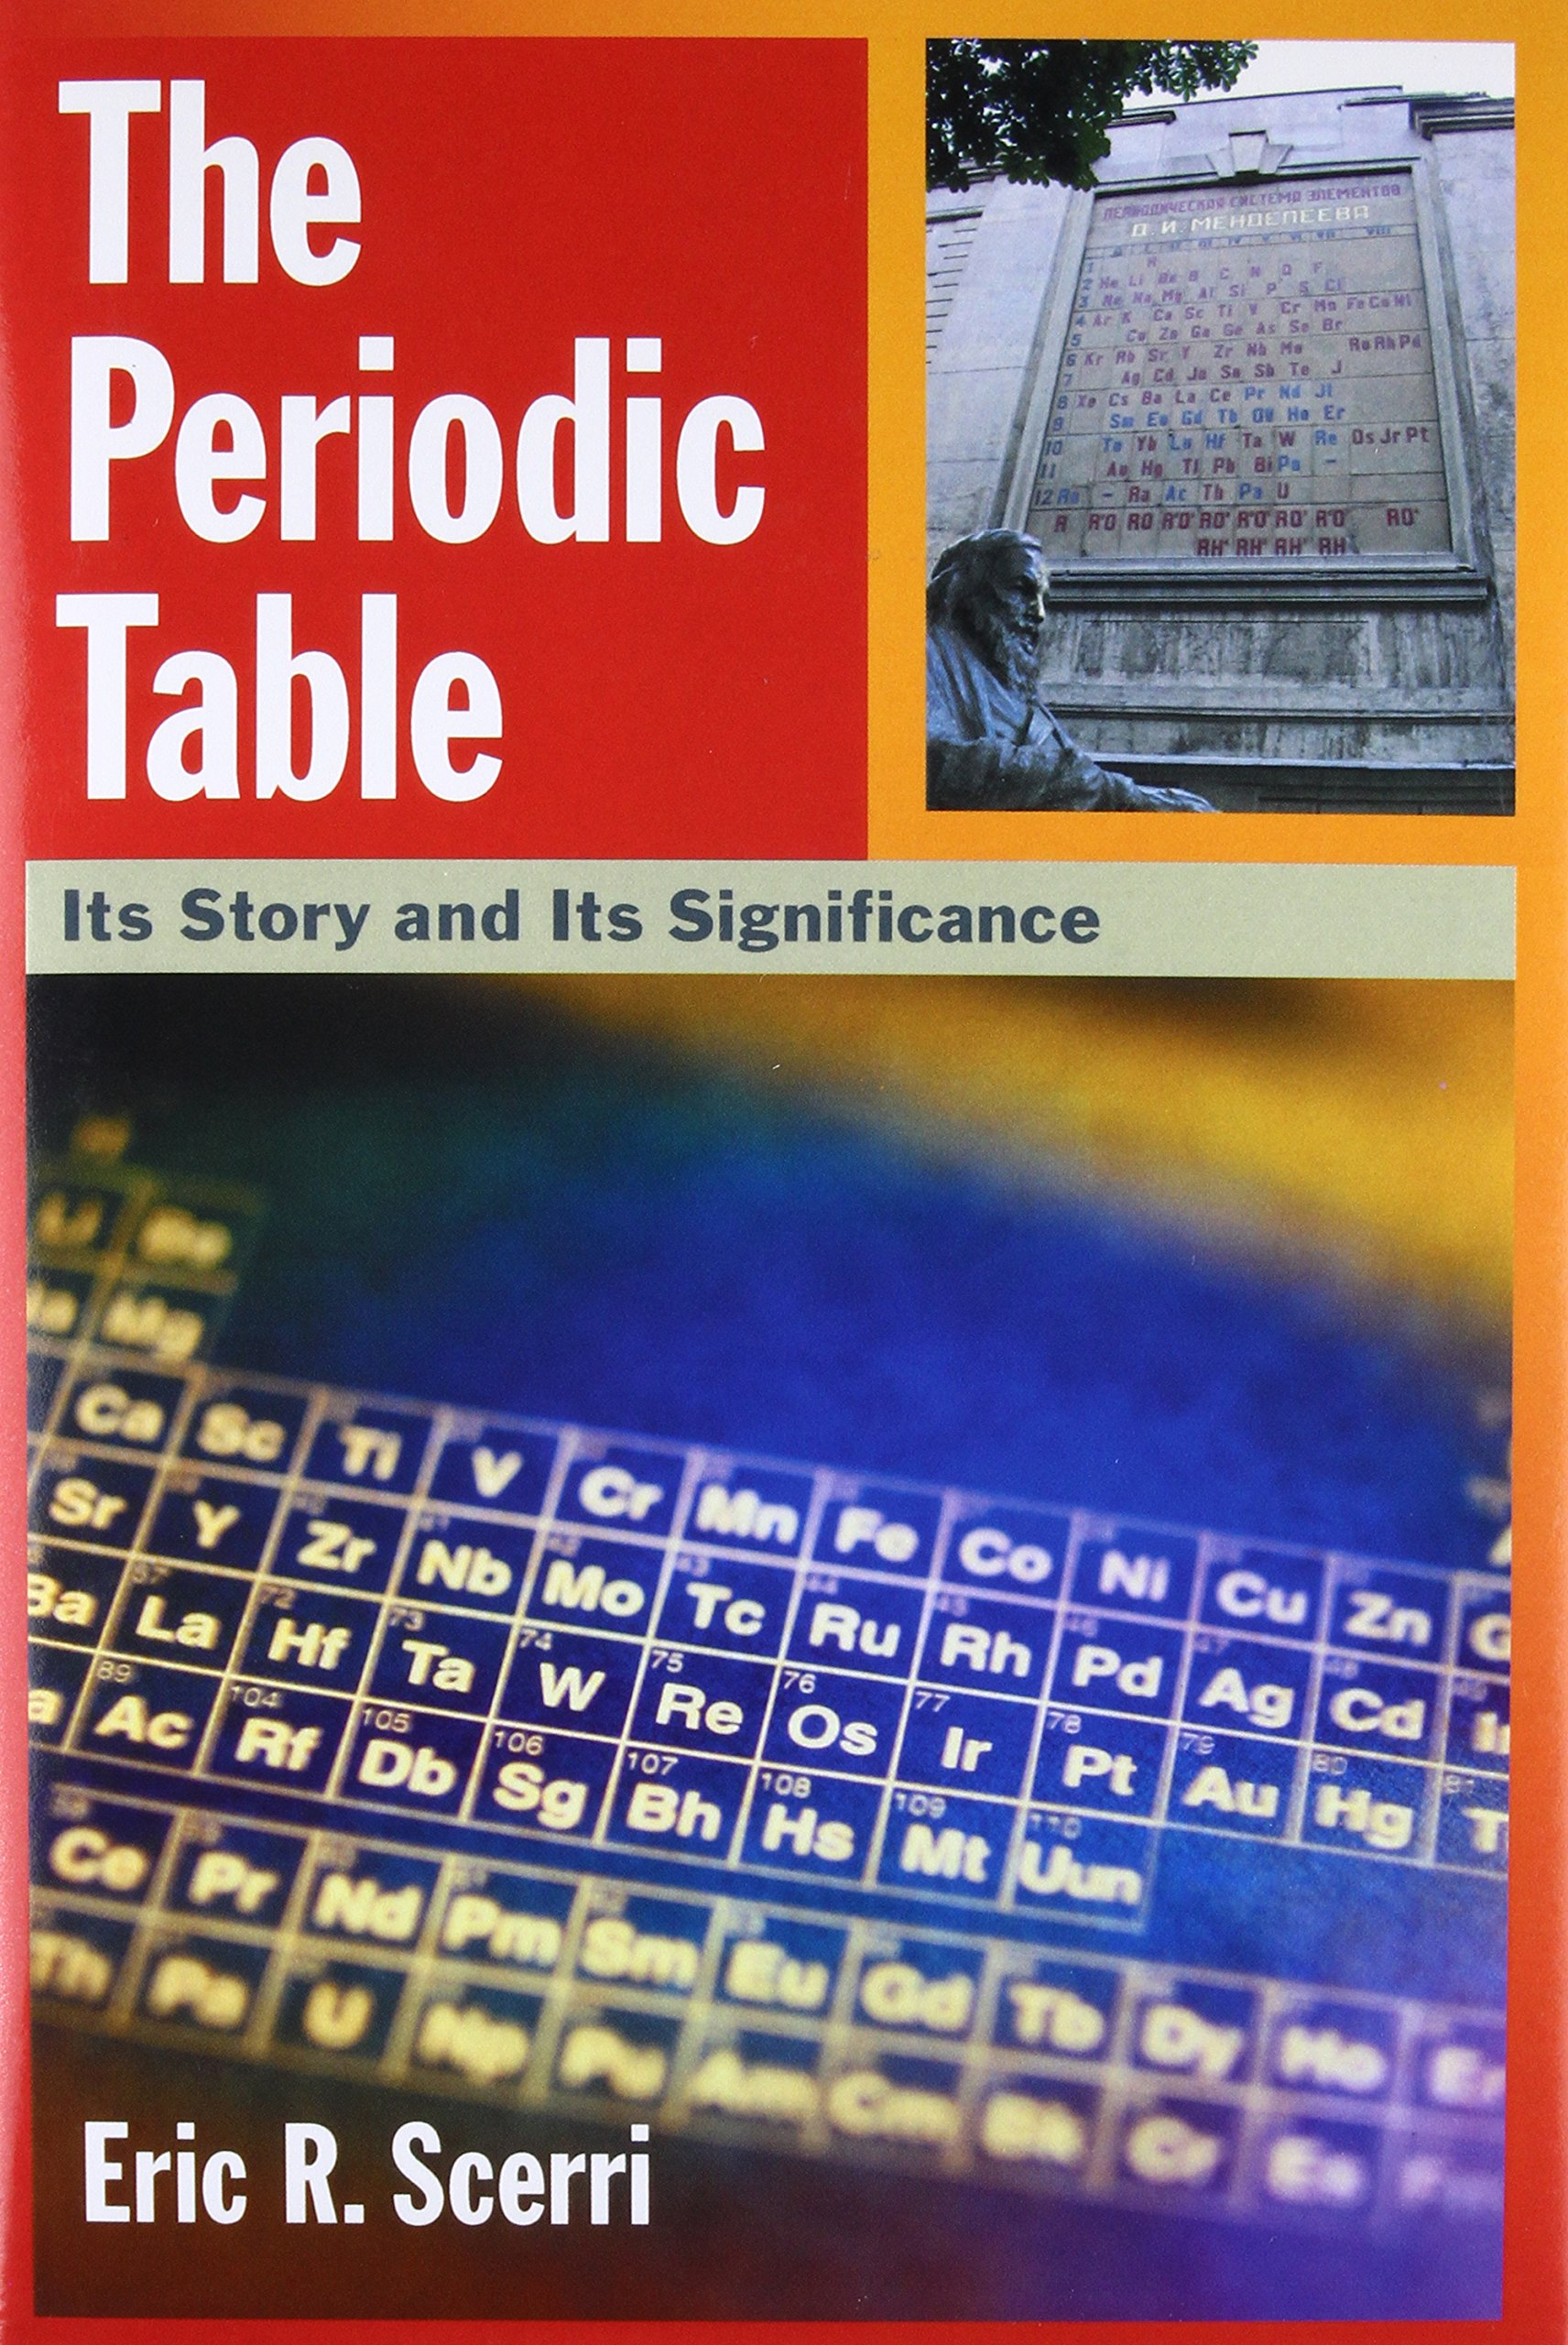 The periodic table its story and its significance amazon the periodic table its story and its significance amazon eric r scerri 9780195305739 books gamestrikefo Choice Image